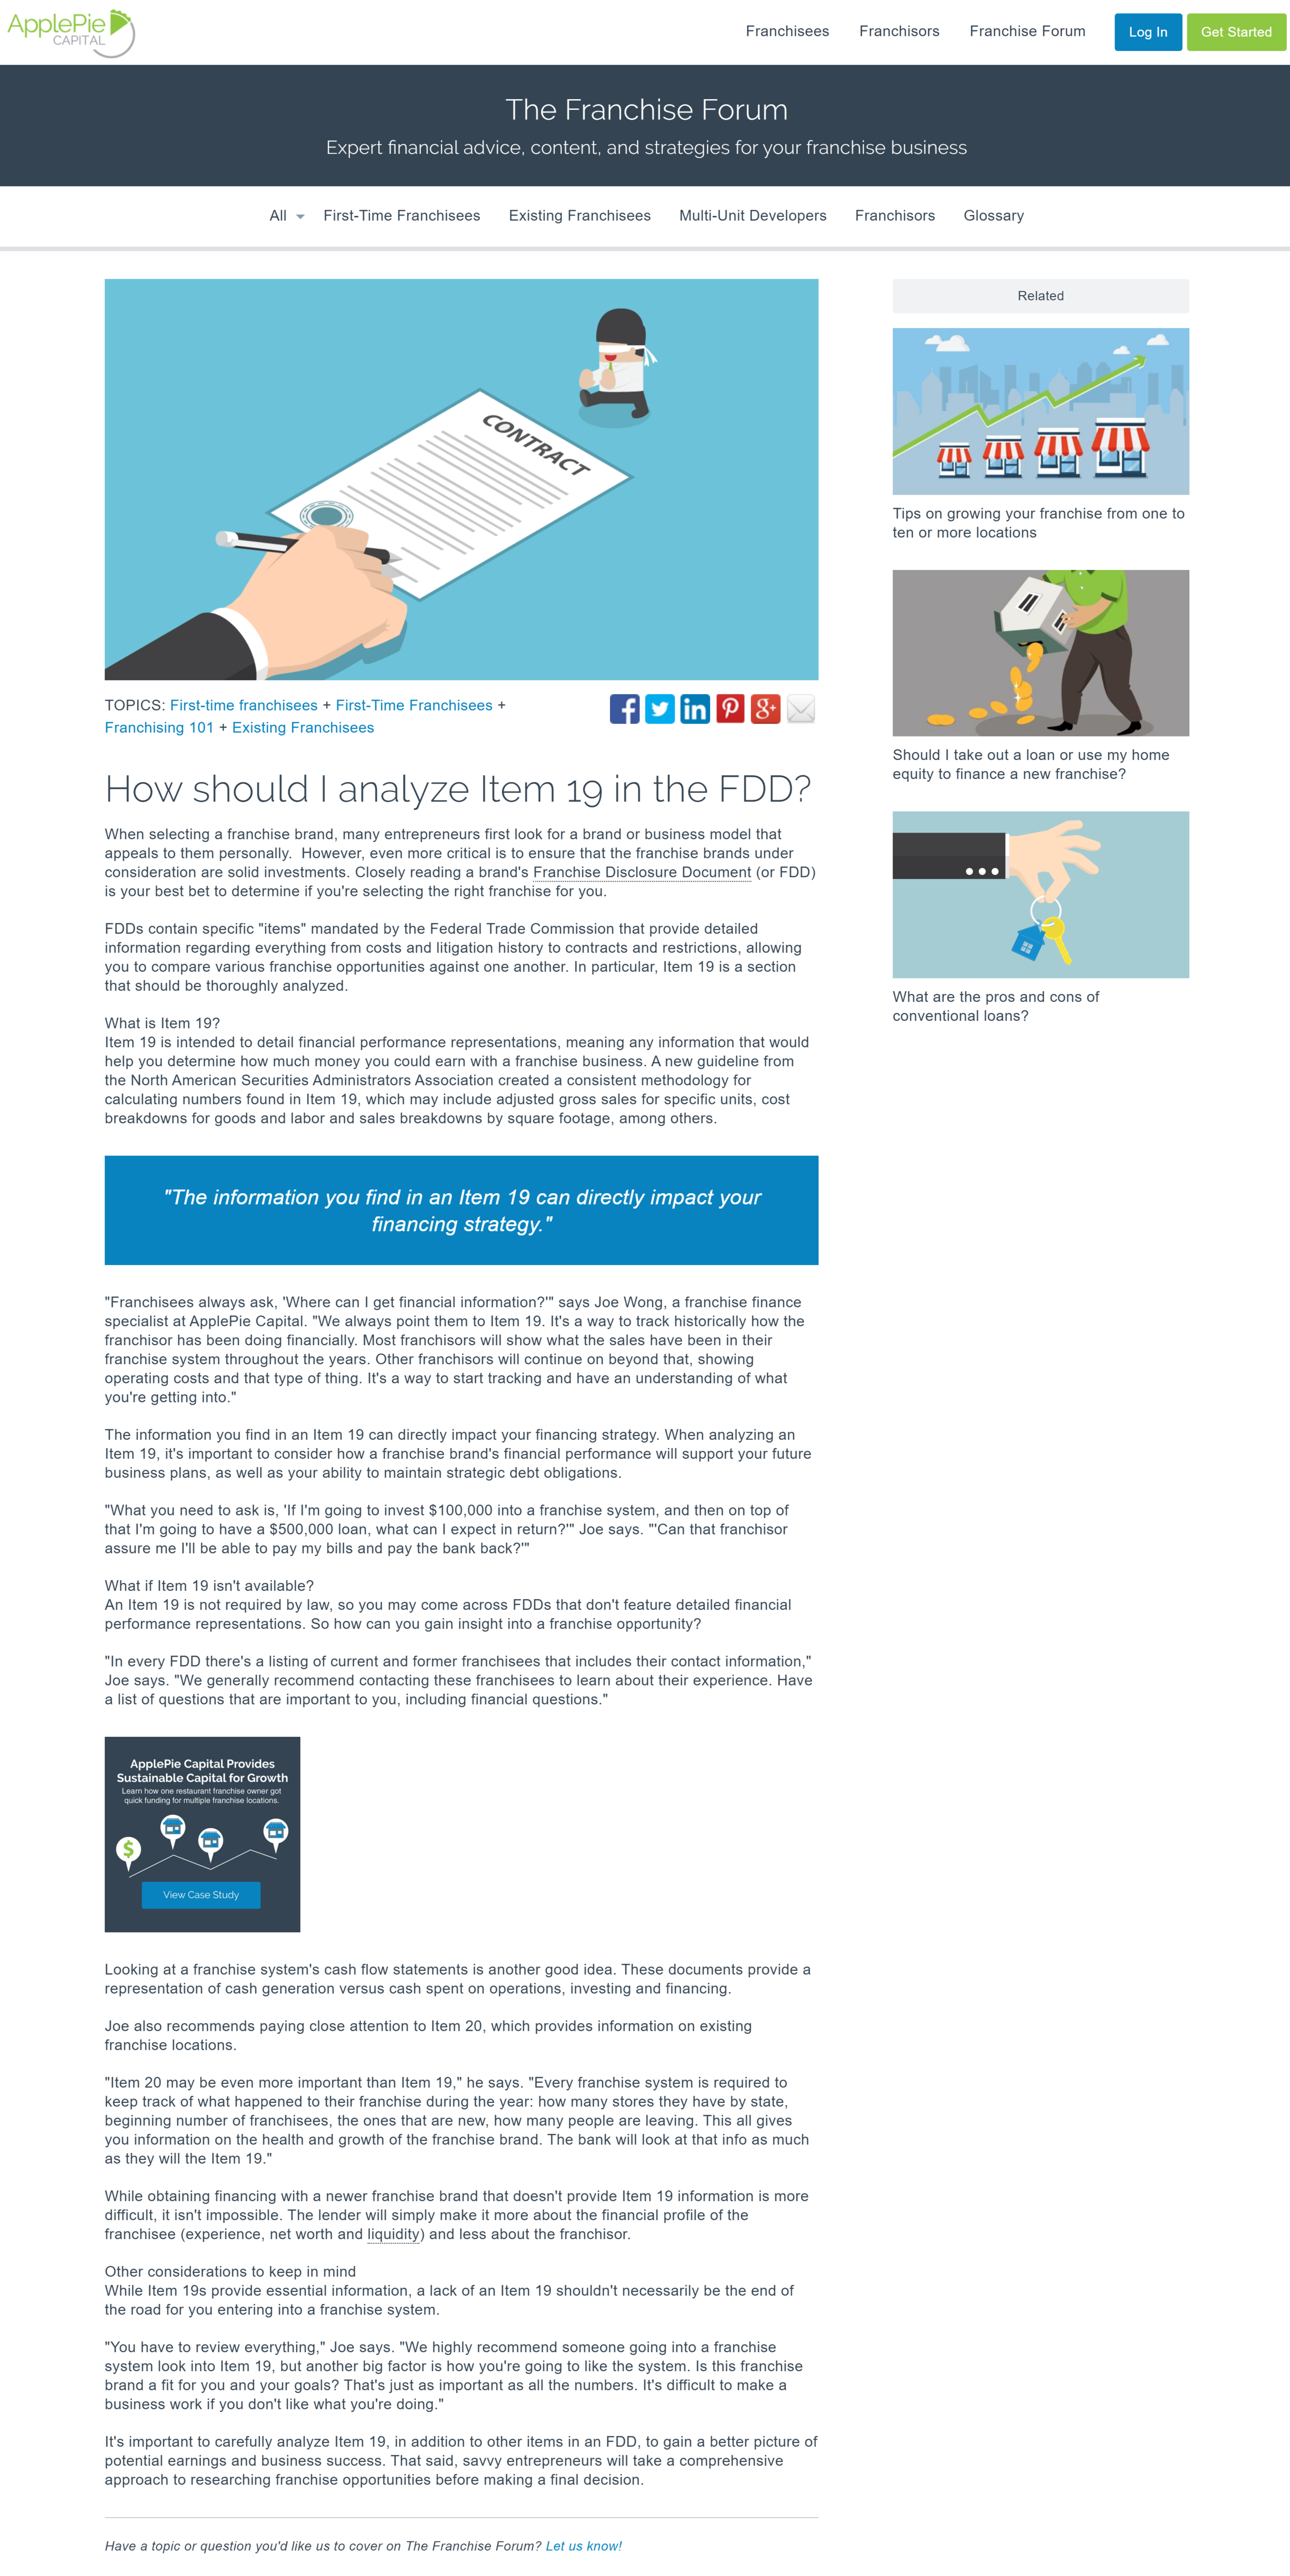 screencapture-applepiecapital-franchise-forum-articles-how-should-i-analyze-item-19-in-the-fdd-2018-07-13-14_04_21.png